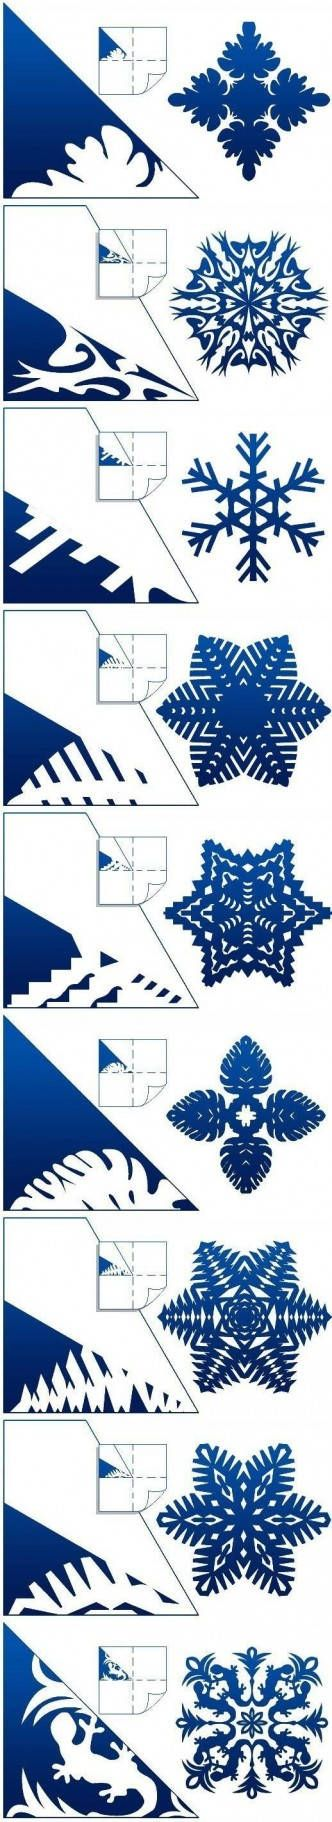 DIY Schemes of Paper Snowflakes DIY Projects